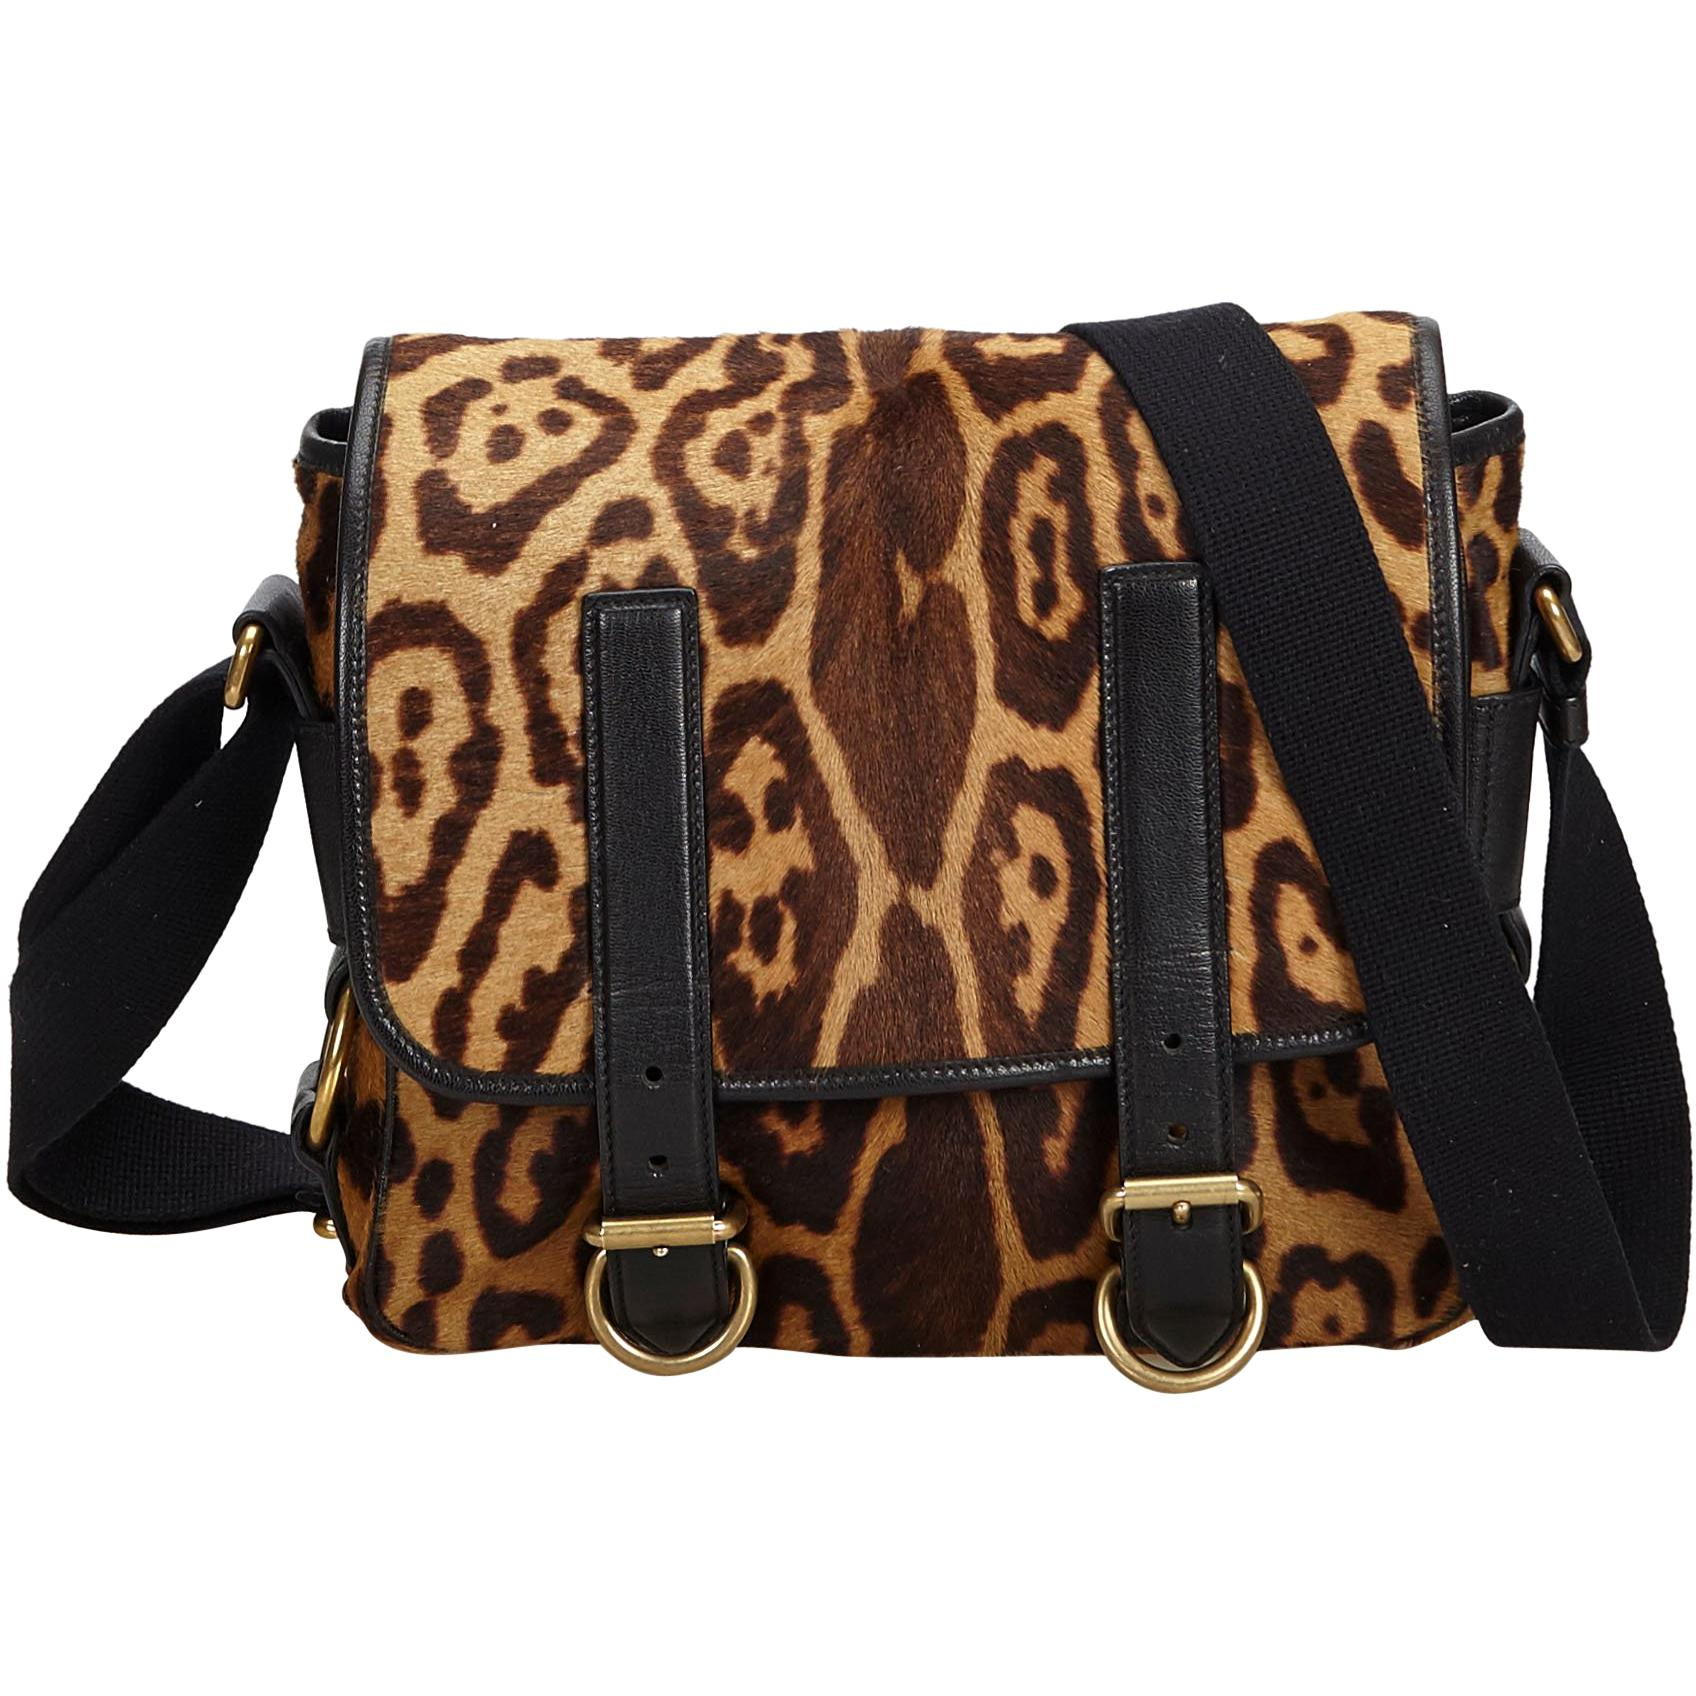 d142fe79f2e9 Luxclusif Crossbody Bags and Messenger Bags - 1stdibs